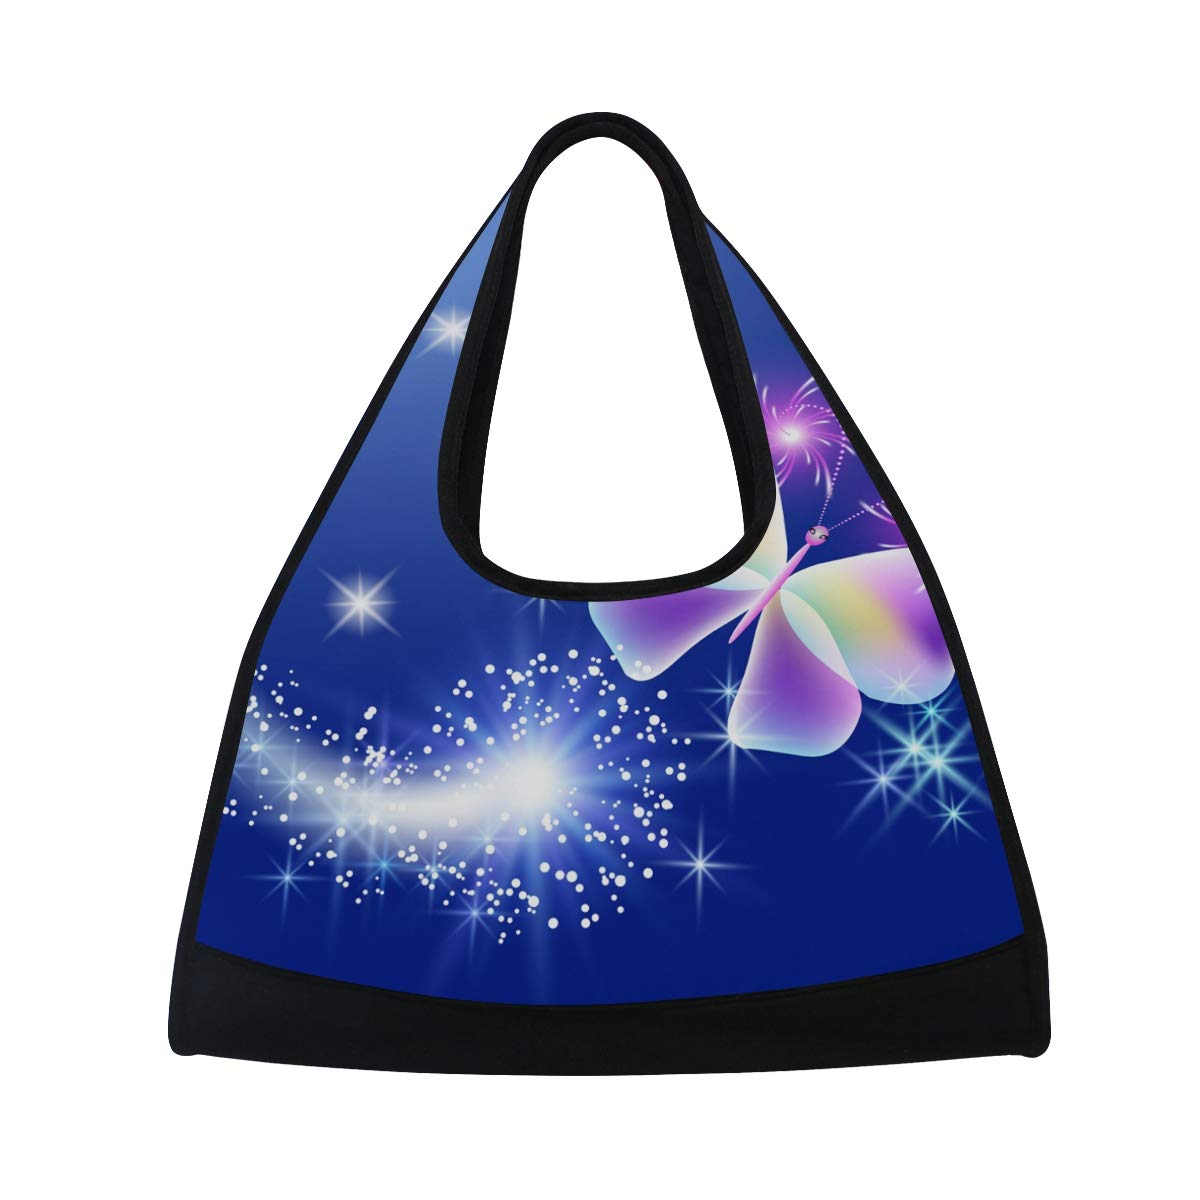 Gym Bag Sports Holdall Butterfly With Stars Canvas Shoulder Bag Overnight Travel Bag for Men and Women